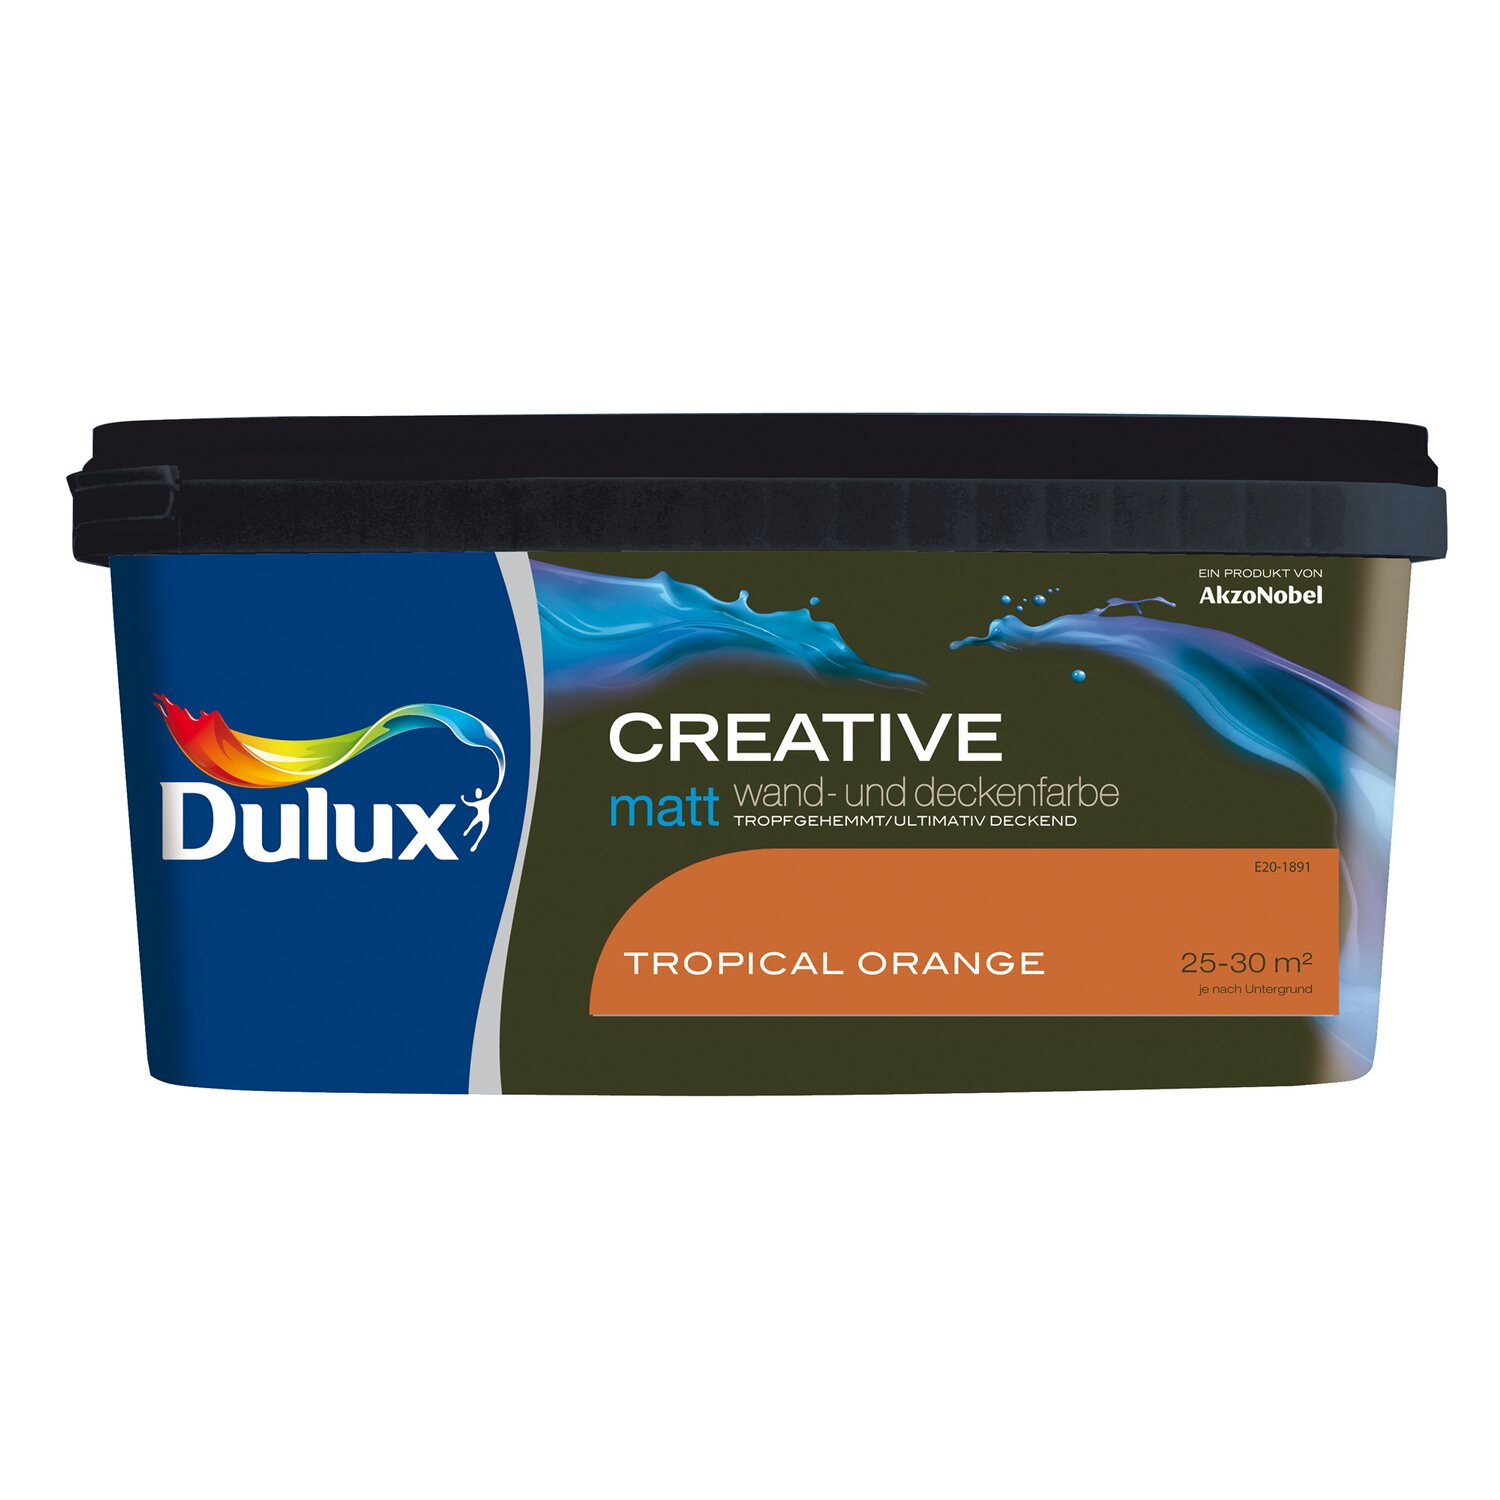 Dulux  Wand- und Deckenfarbe Creative Tropical Orange matt 2,5 l